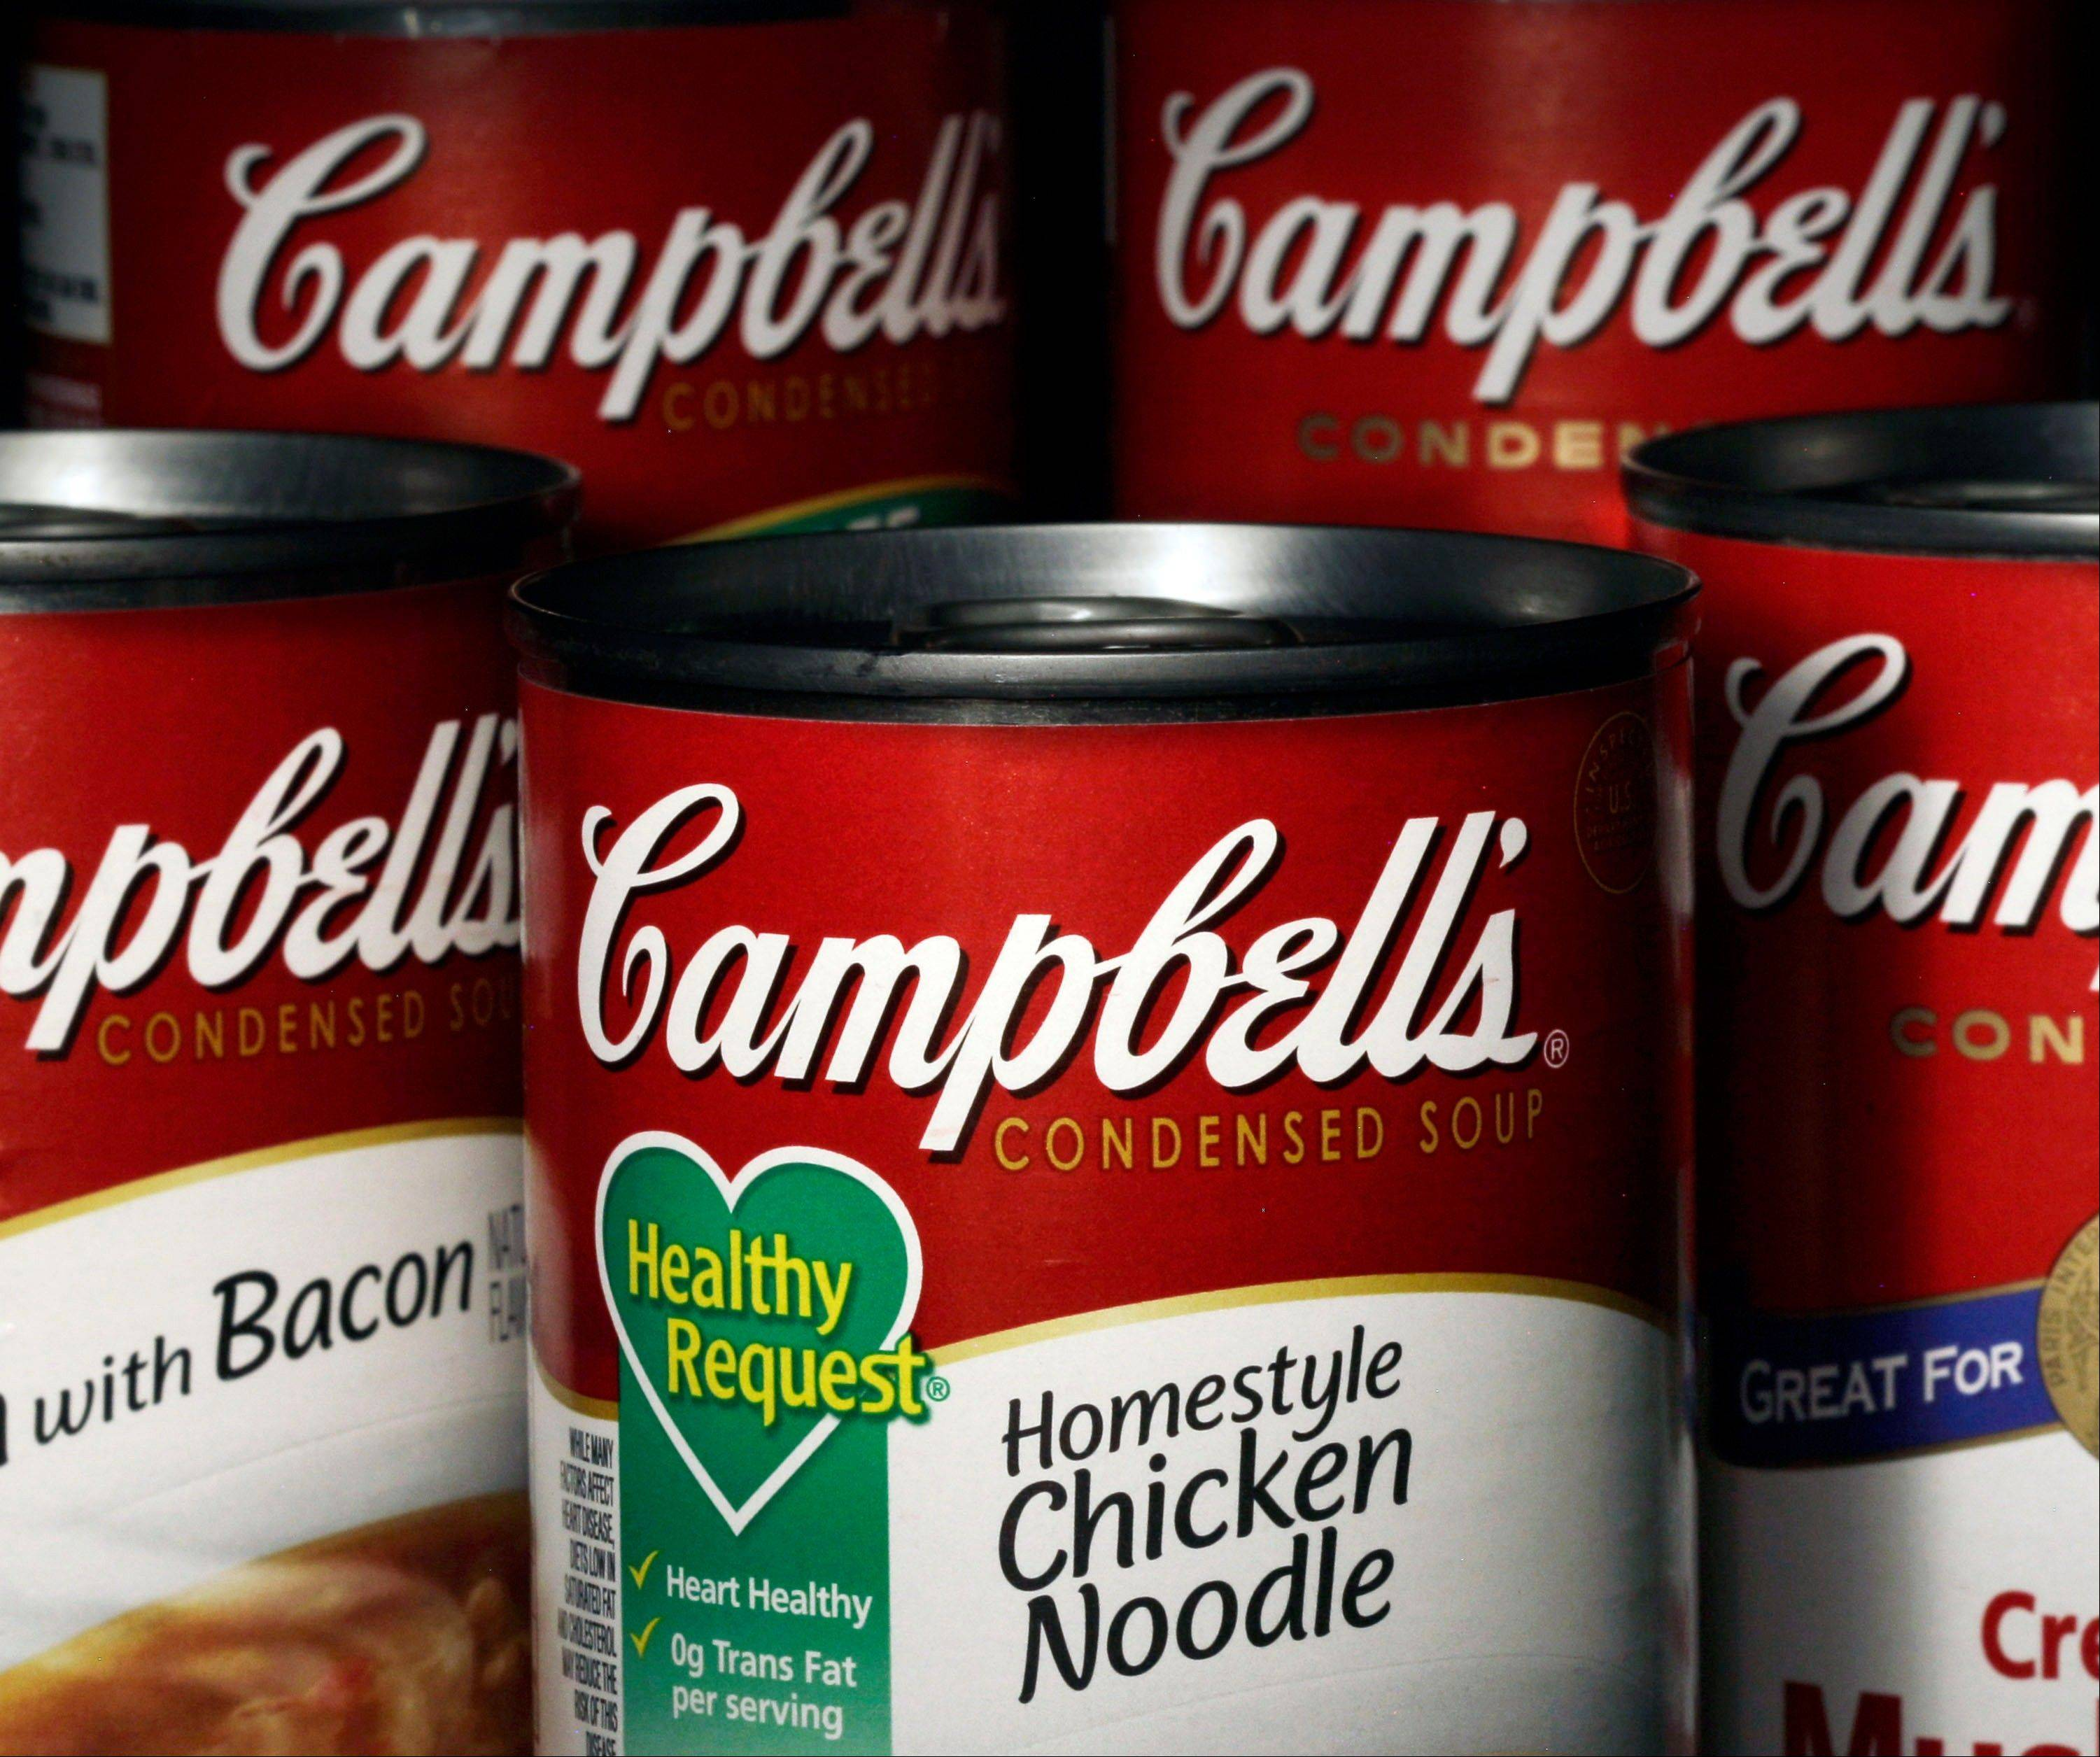 Campbell's soup cans sit on shelves in Moreland Hills, Ohio. Campbell announced Thursday that it will be closing two U.S. plants and cutting more than 700 jobs as it looks to trim costs amid declining canned soup consumption.